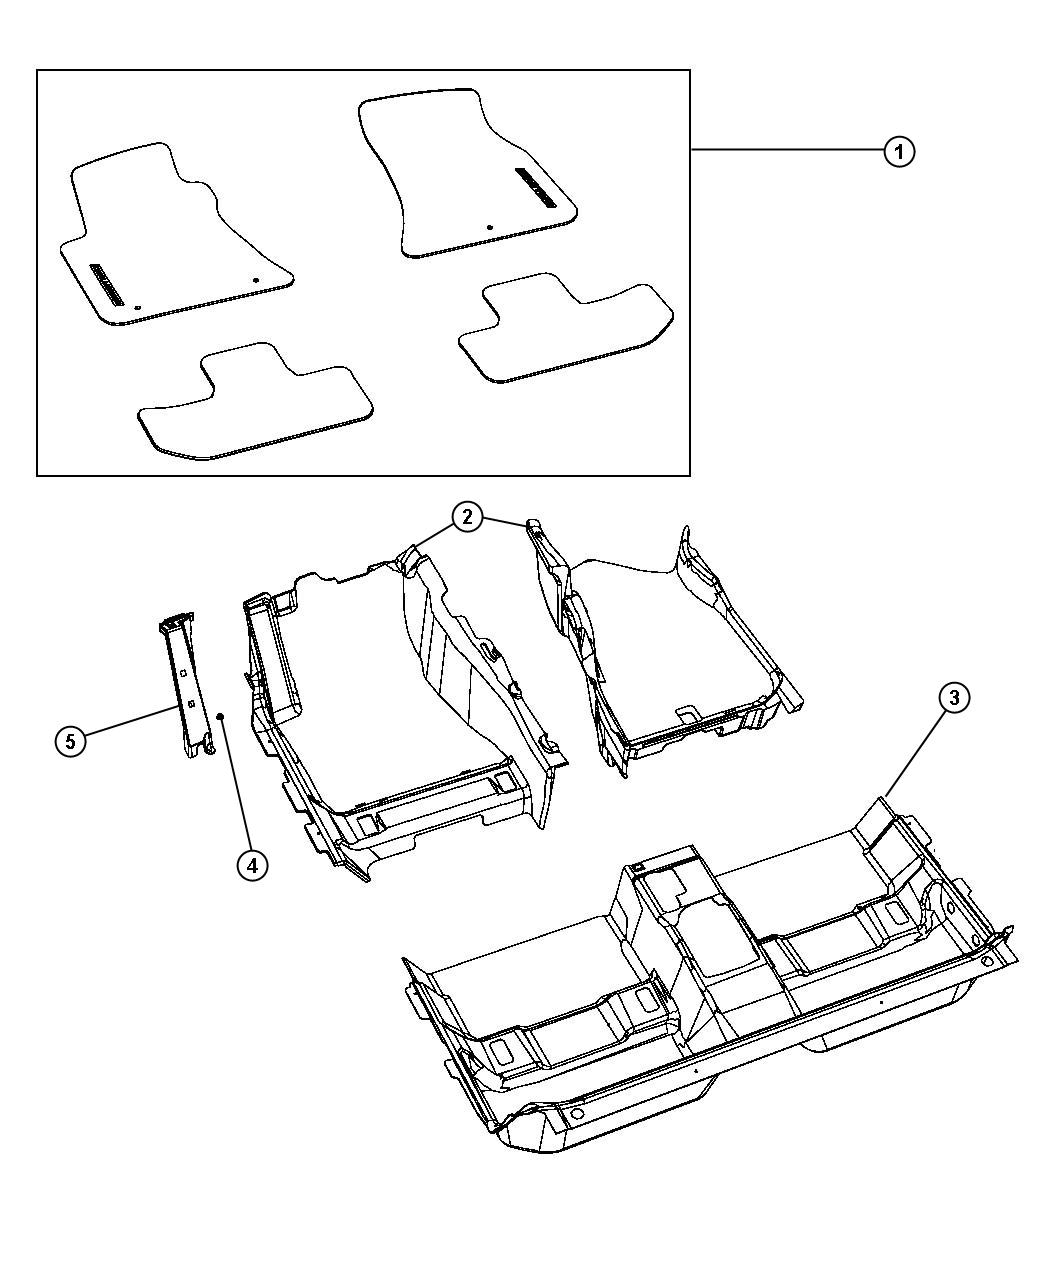 2014 Dodge Challenger Mat kit. Floor. [clz]. Trim: (*o0